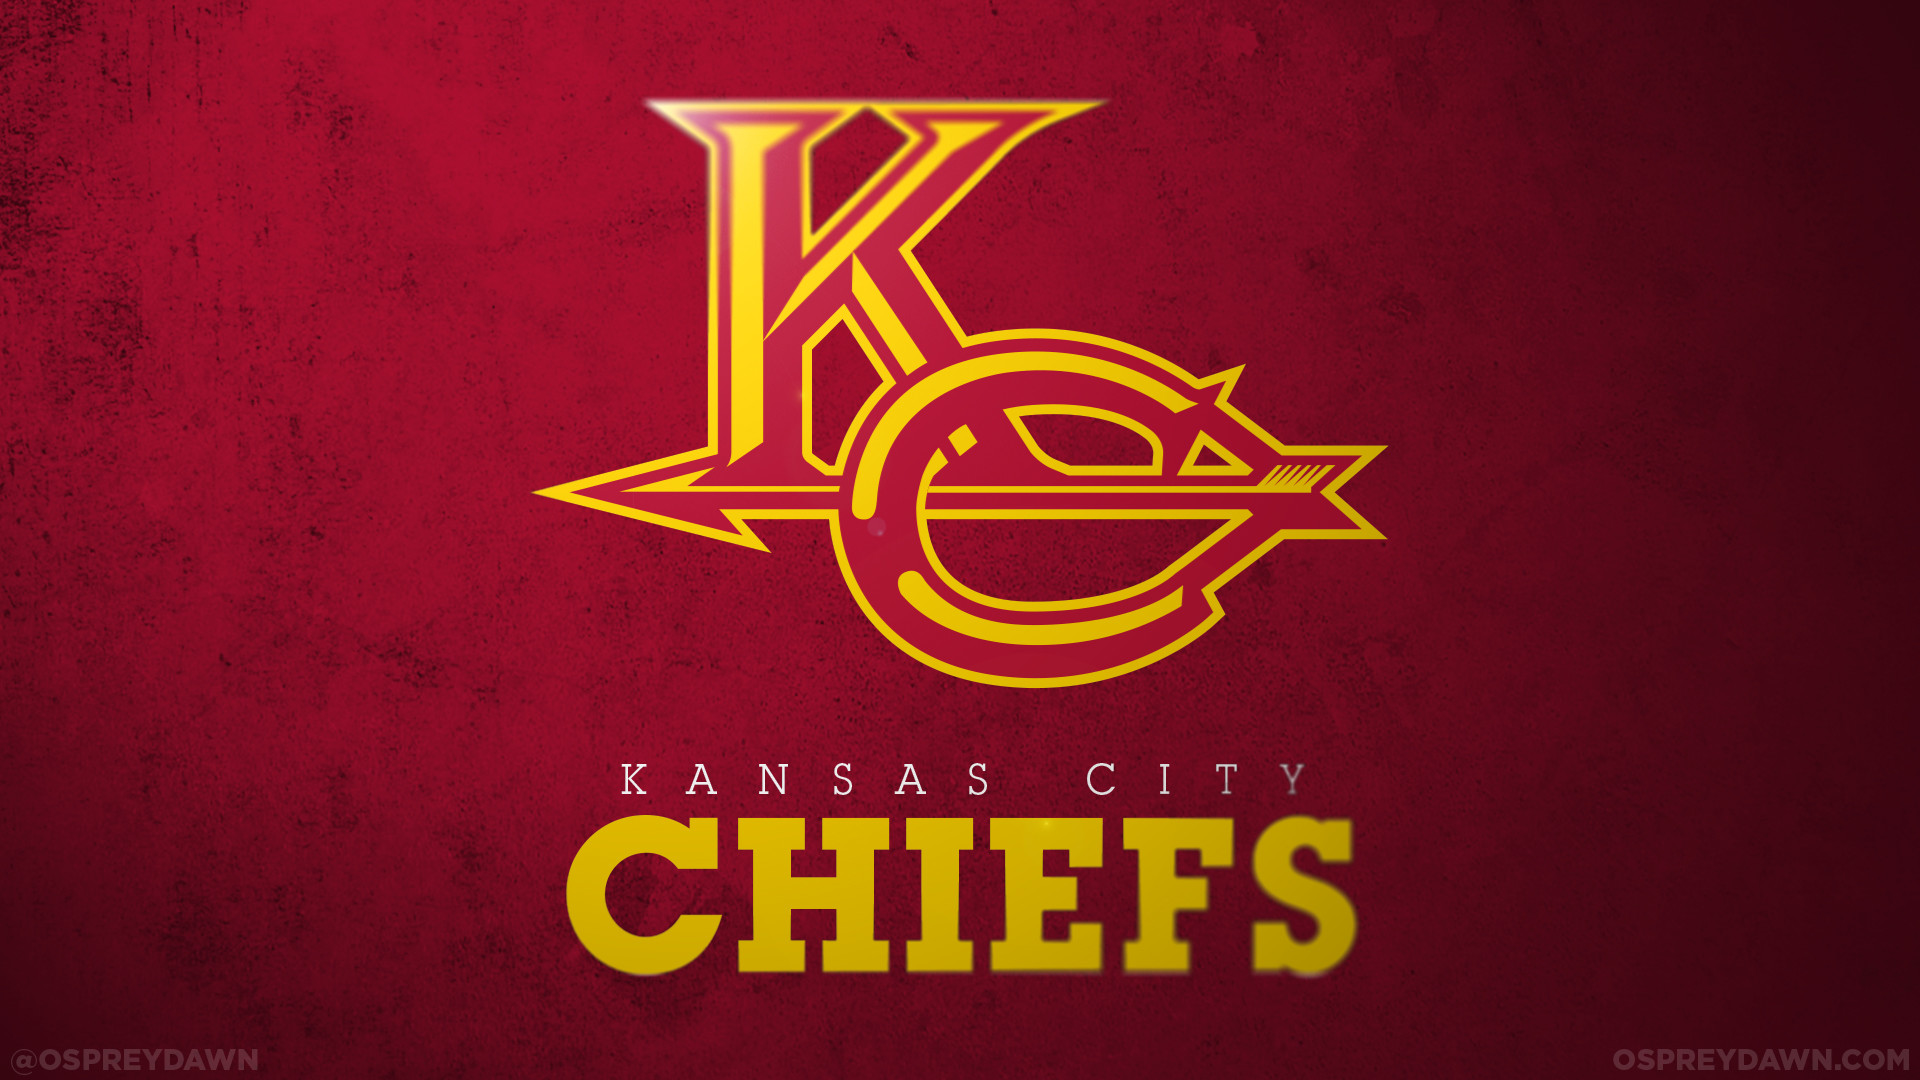 1920x1080 Kansas City Chiefs Football Team Logo Wallpapers HD / Desktop and Mobile  Backgrounds